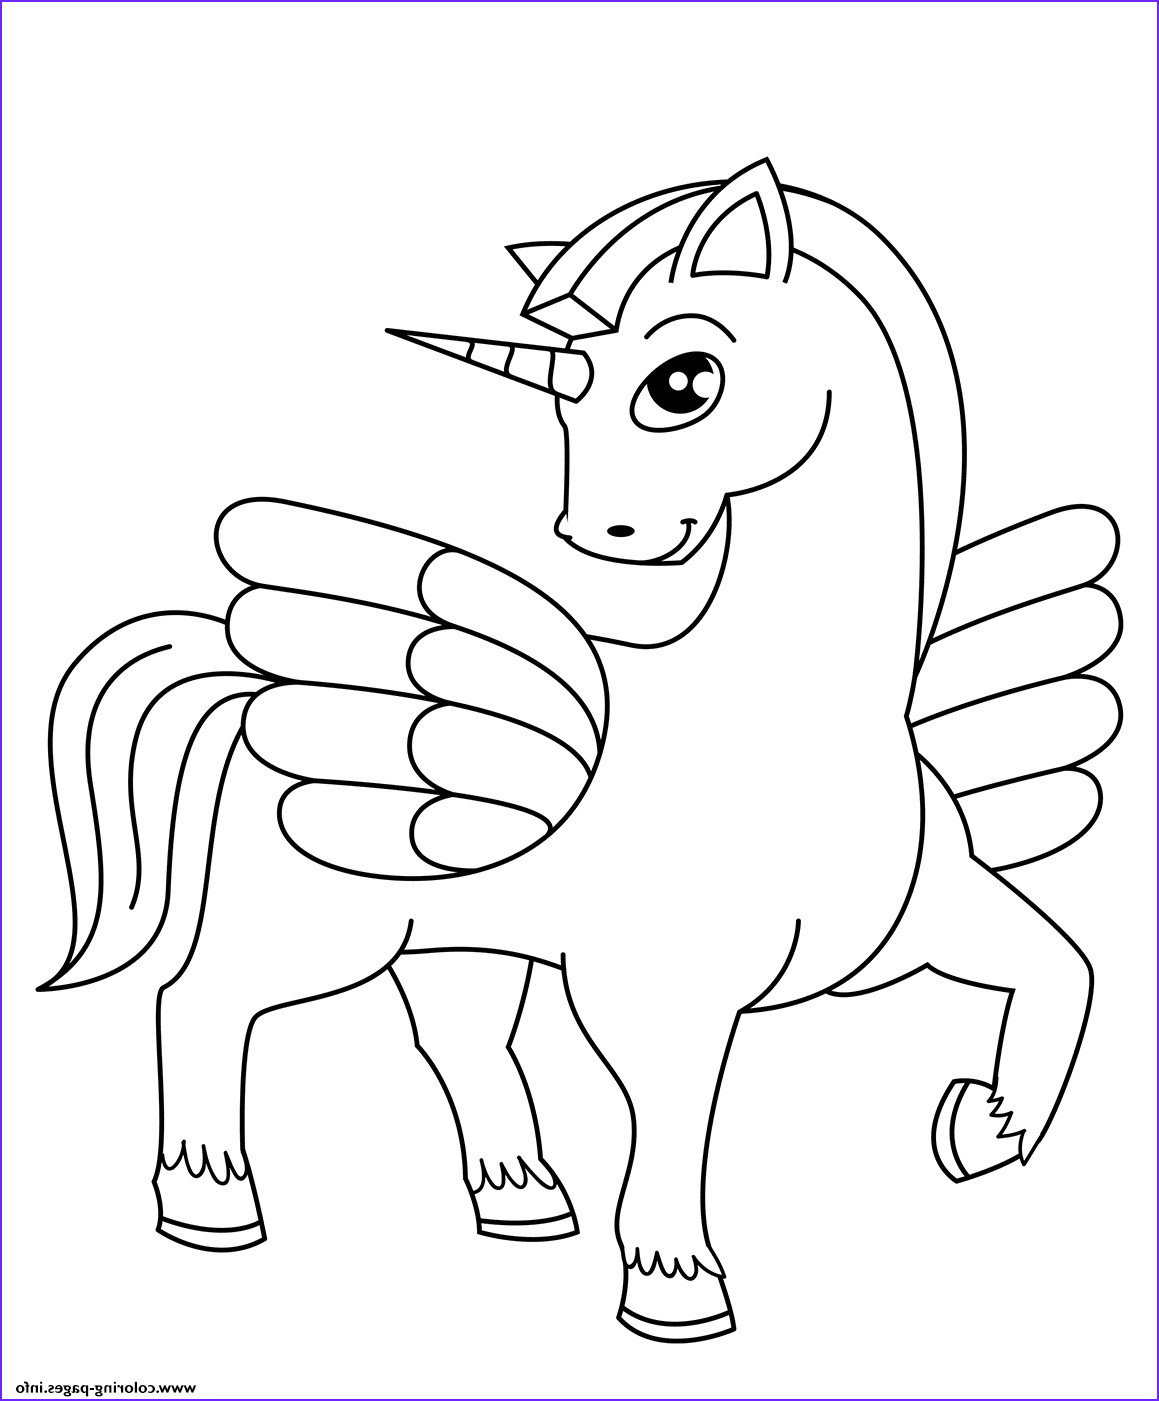 Coloring Page Cute Unicorn Luxury Photos Special Needs Coloring Pages Learny Kids